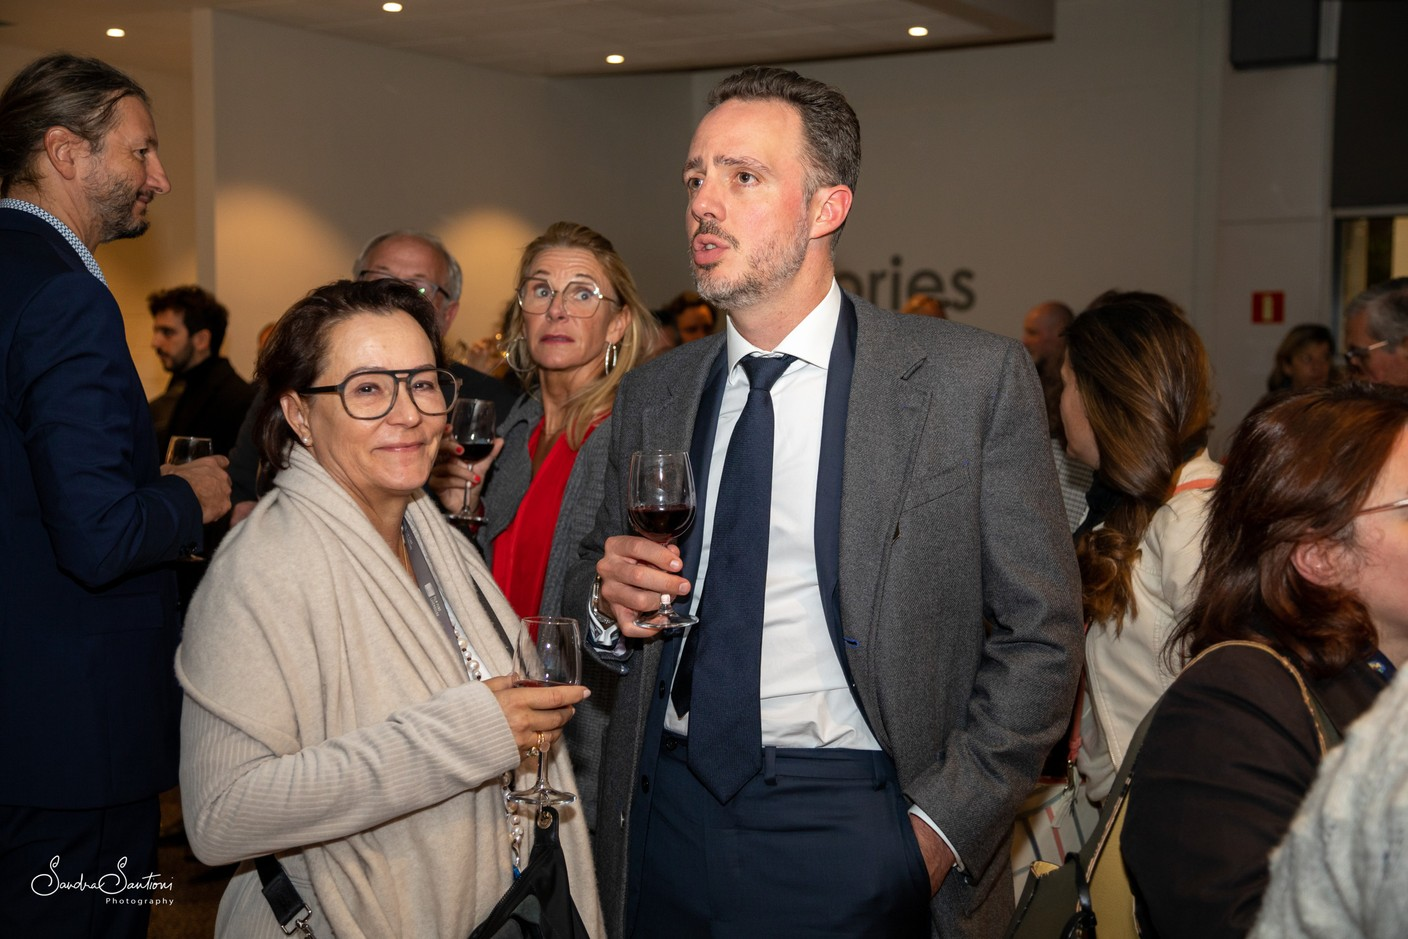 Alexandra Hoesdorff (Deal Productions) and Dr Philippe Wilmes Sandra Santioni Photography